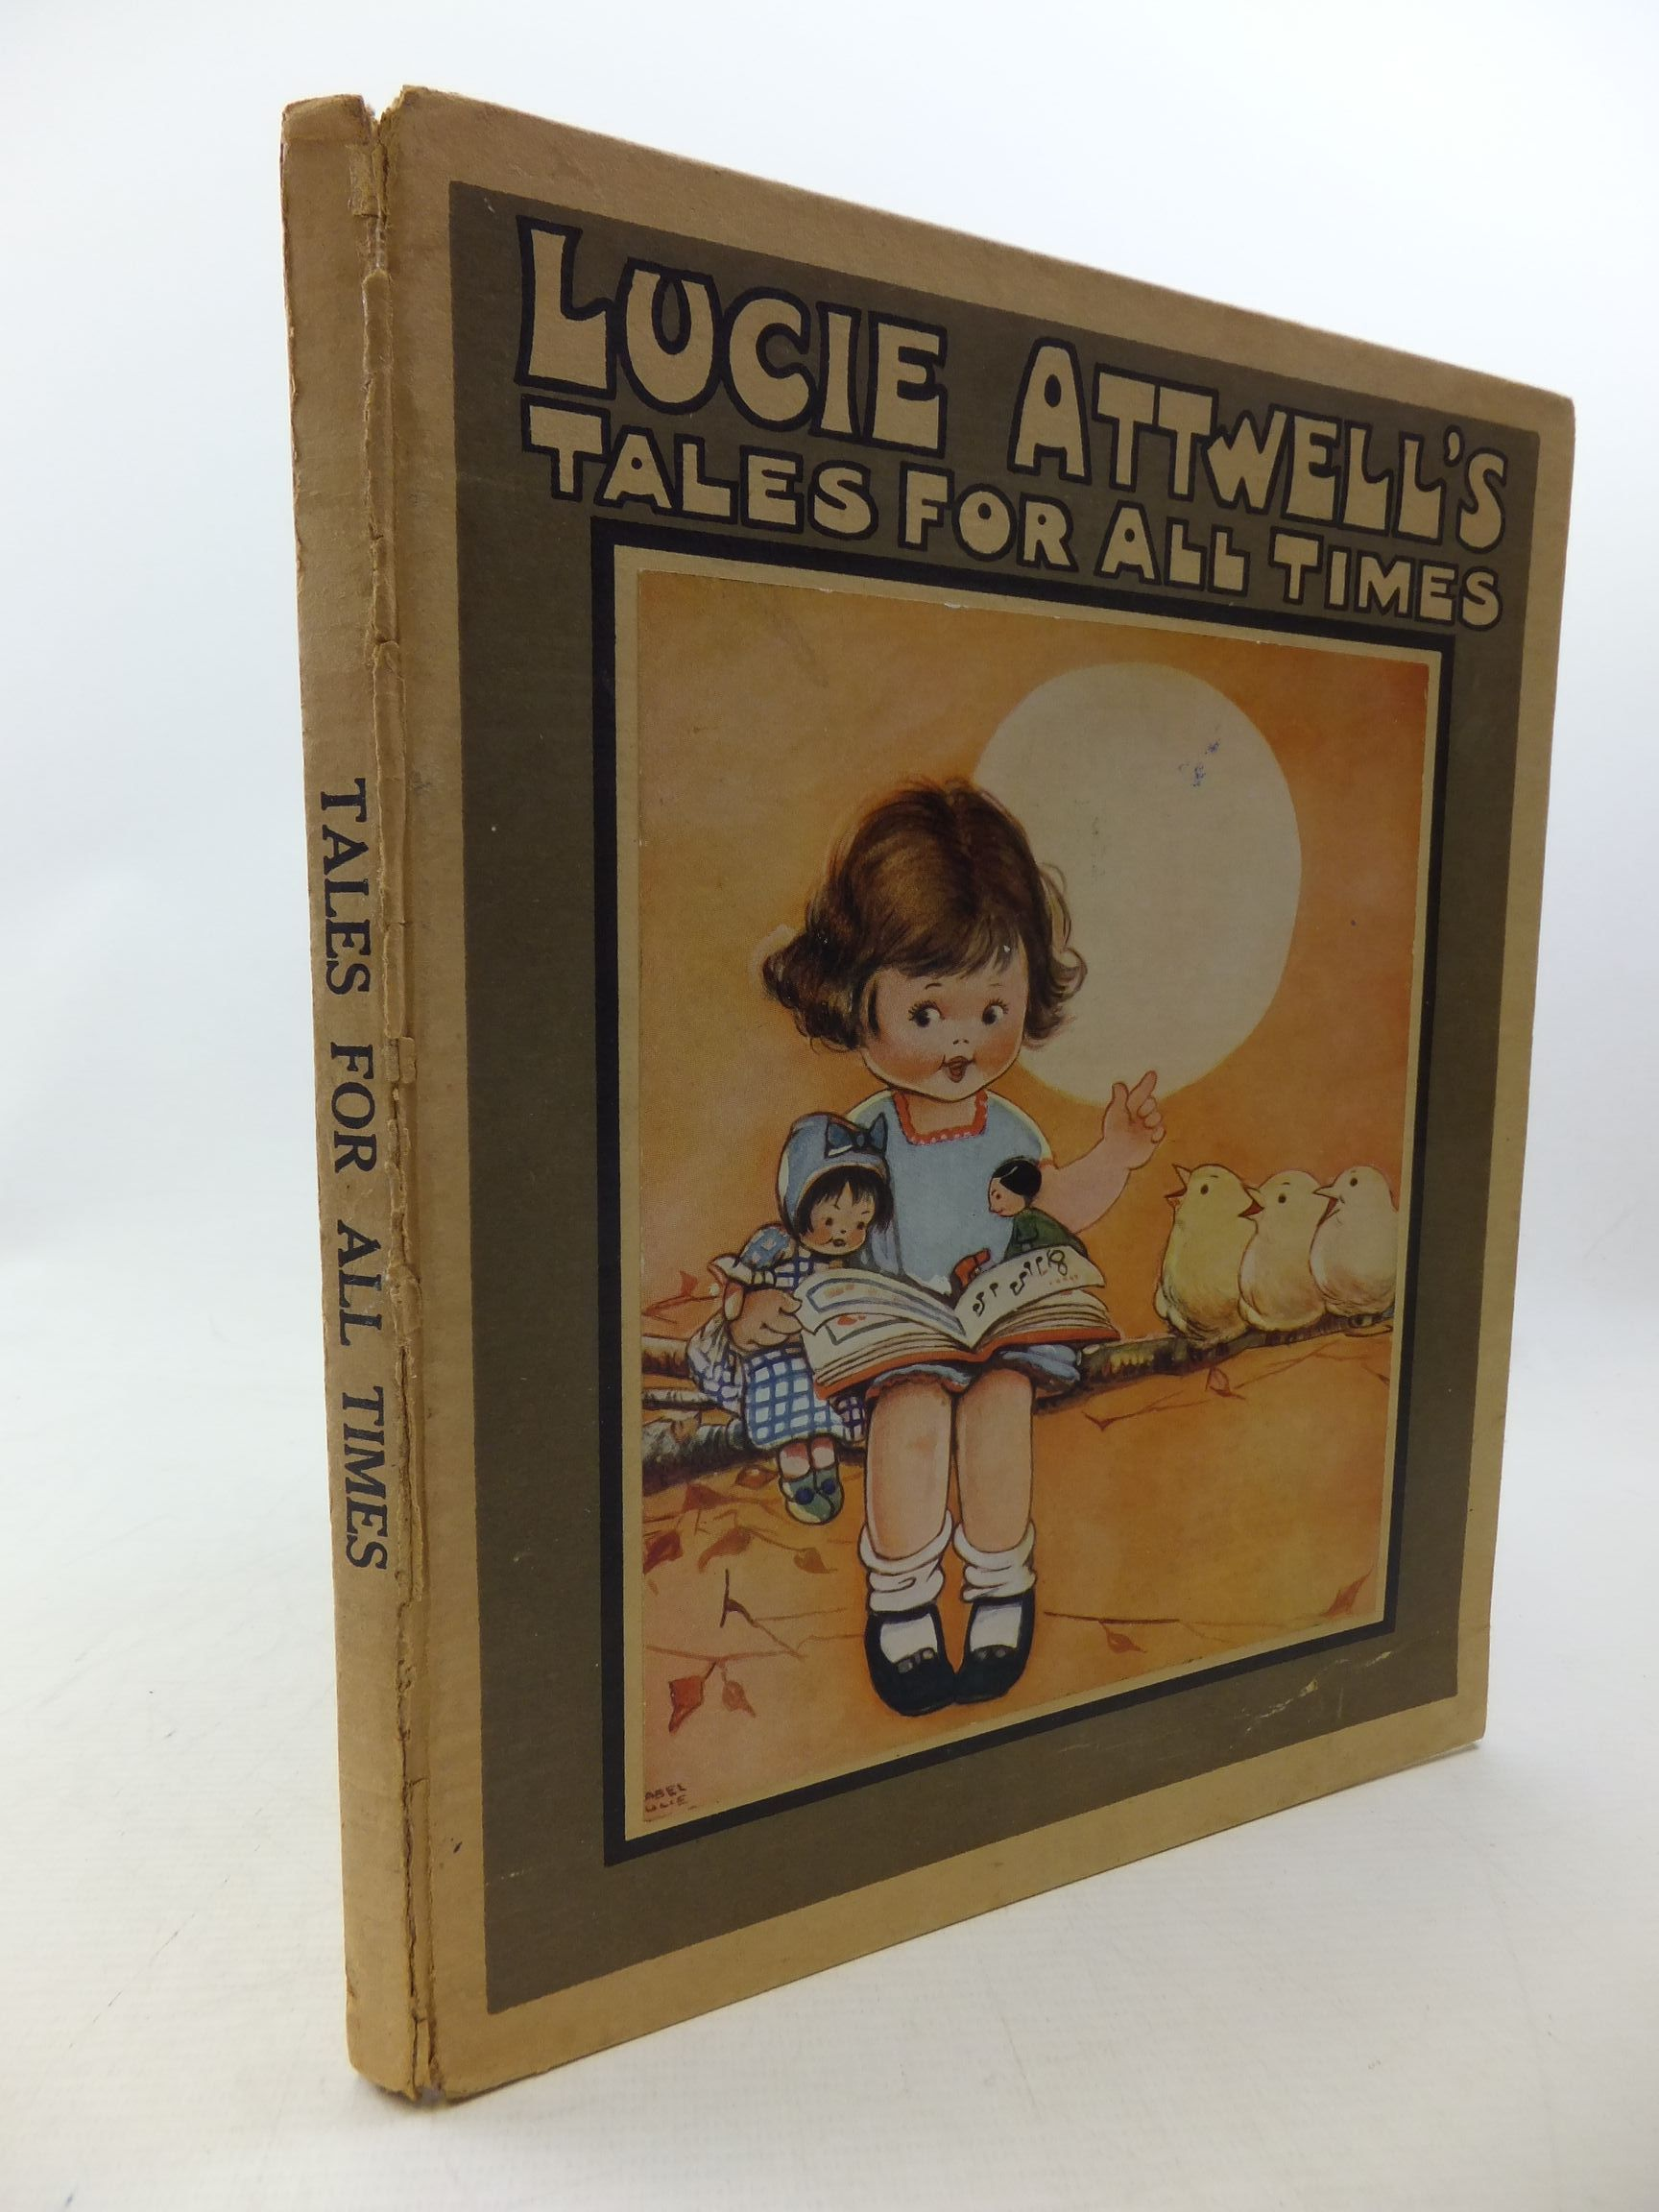 Photo of LUCIE ATTWELL'S TALES FOR ALL TIMES written by Attwell, Mabel Lucie illustrated by Attwell, Mabel Lucie published by S.W. Partridge & Co. (STOCK CODE: 1710684)  for sale by Stella & Rose's Books